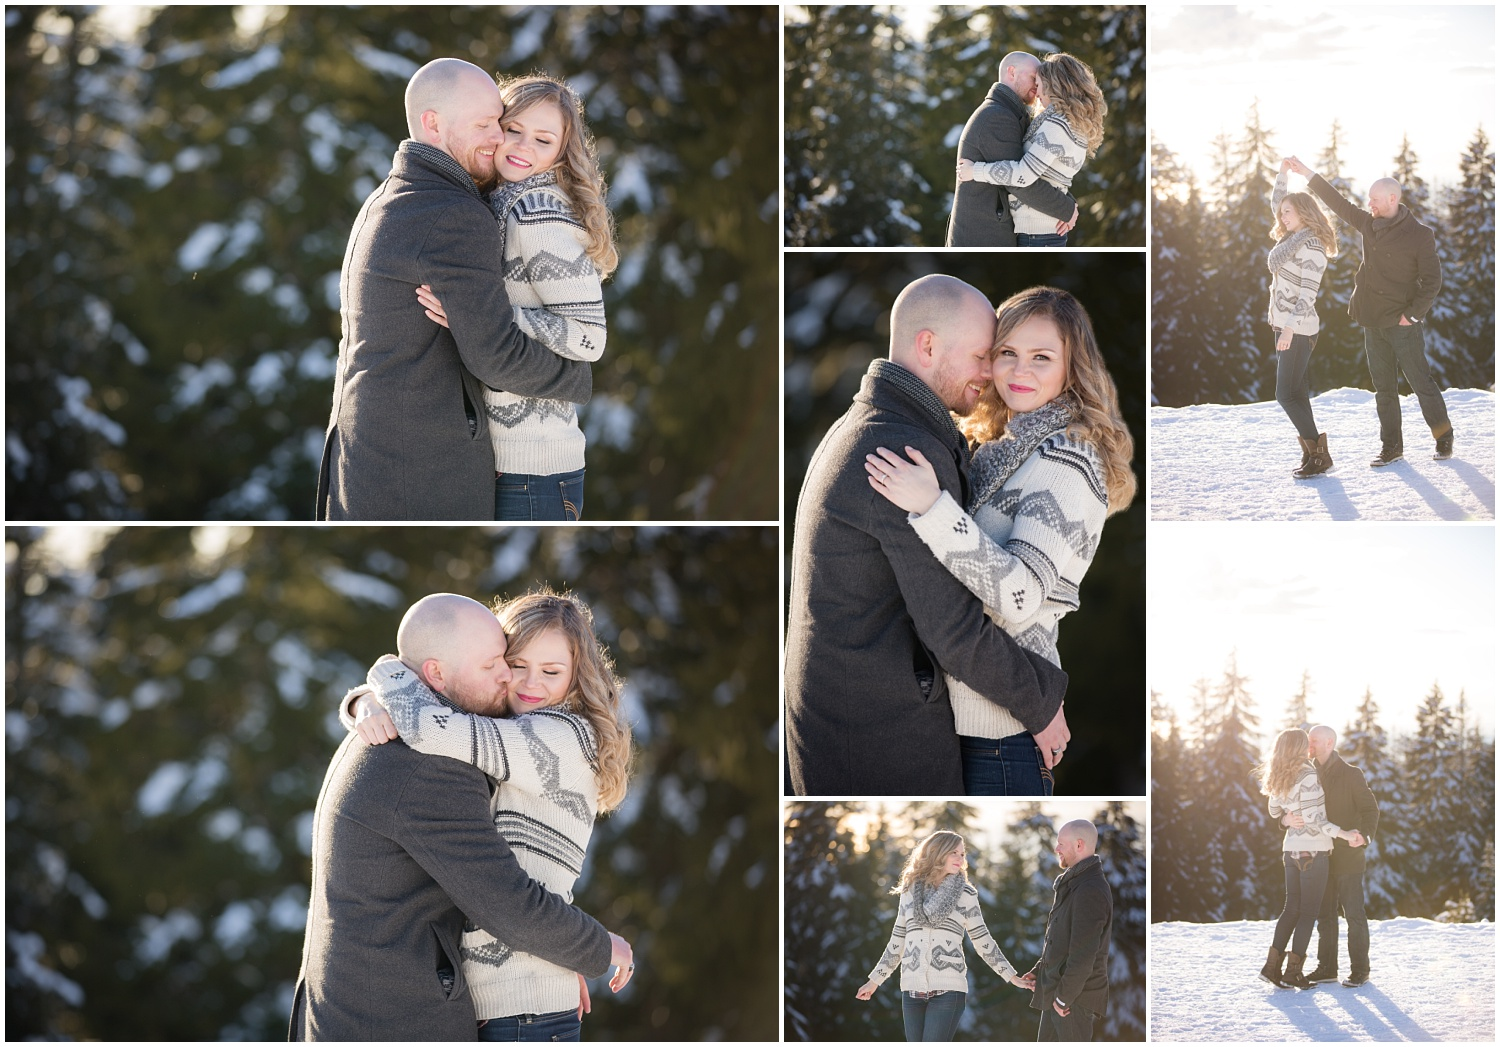 Amazing Day Photography - Langely Wedding Photographer - Snow Engagement Session - Mount Seymour Engagement - Winter Engagement Session - North Vancouver Engagement Session  (9).jpg